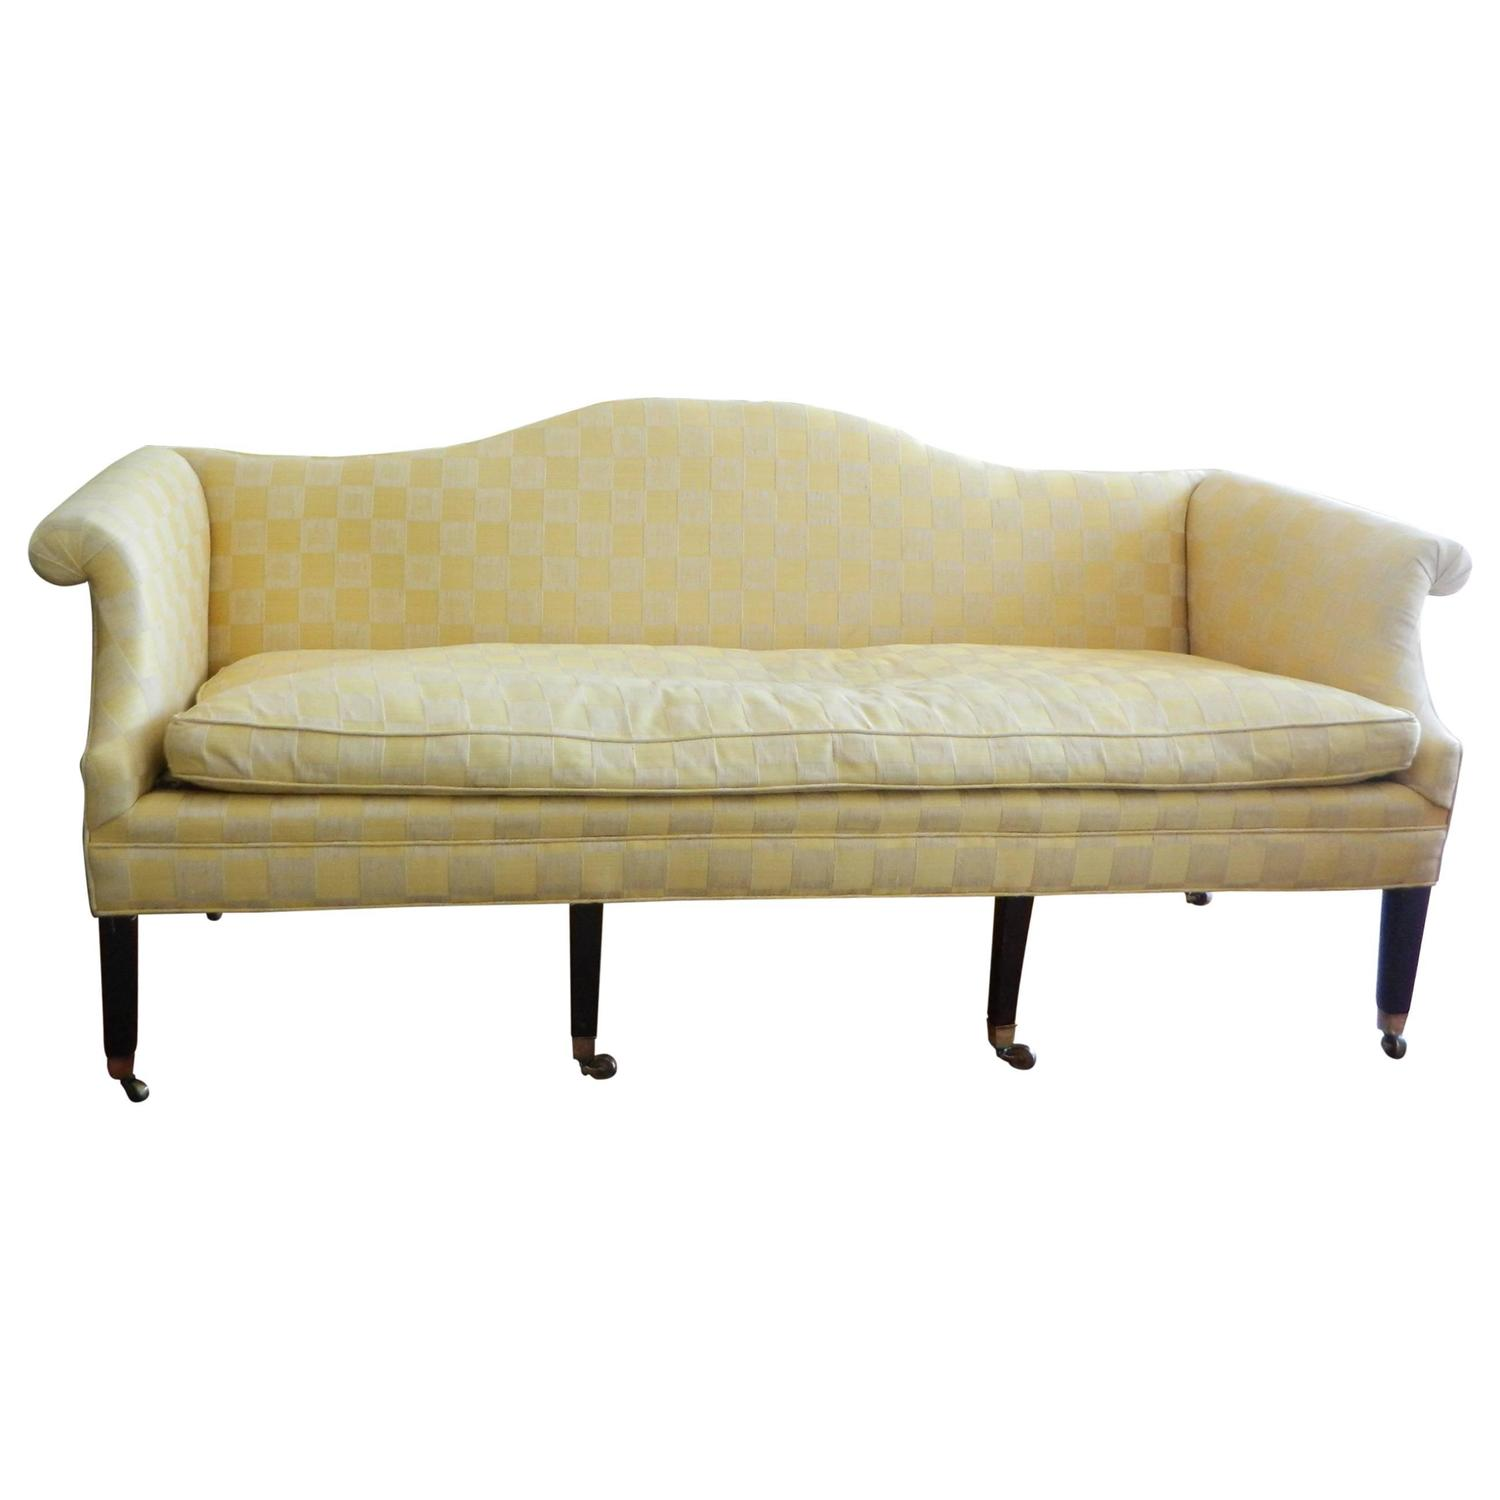 American Fine Chippendale Federal Style Upholstered Sofa Circa 1780 For Sale At 1stdibs